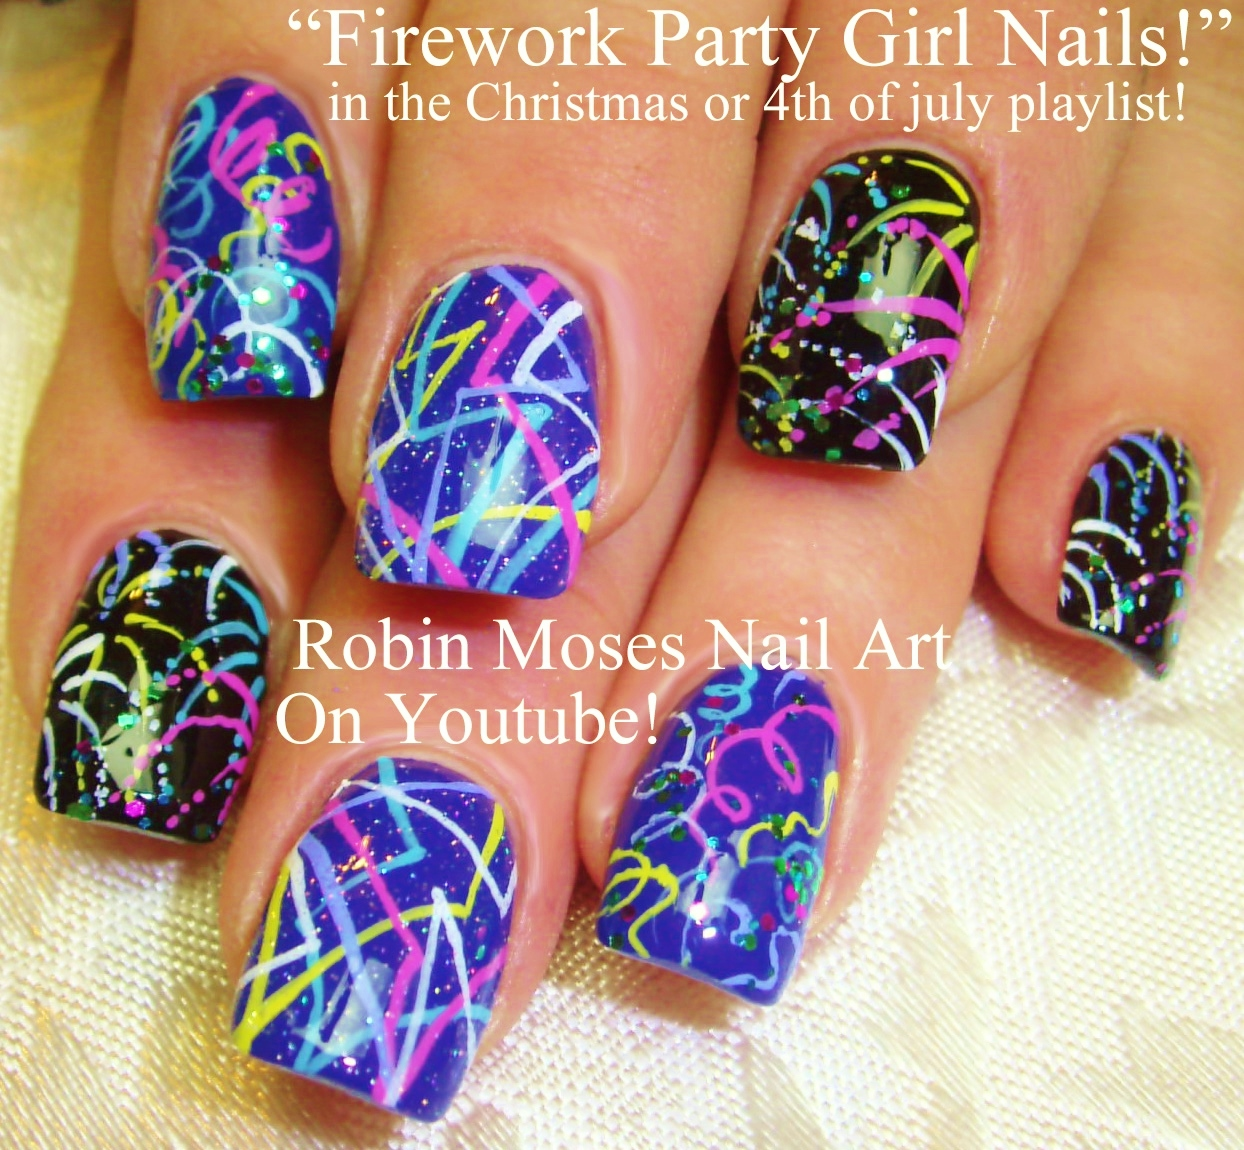 Nail Art by Robin Moses: Romantic Firework Nail Art Design Tutorial ...